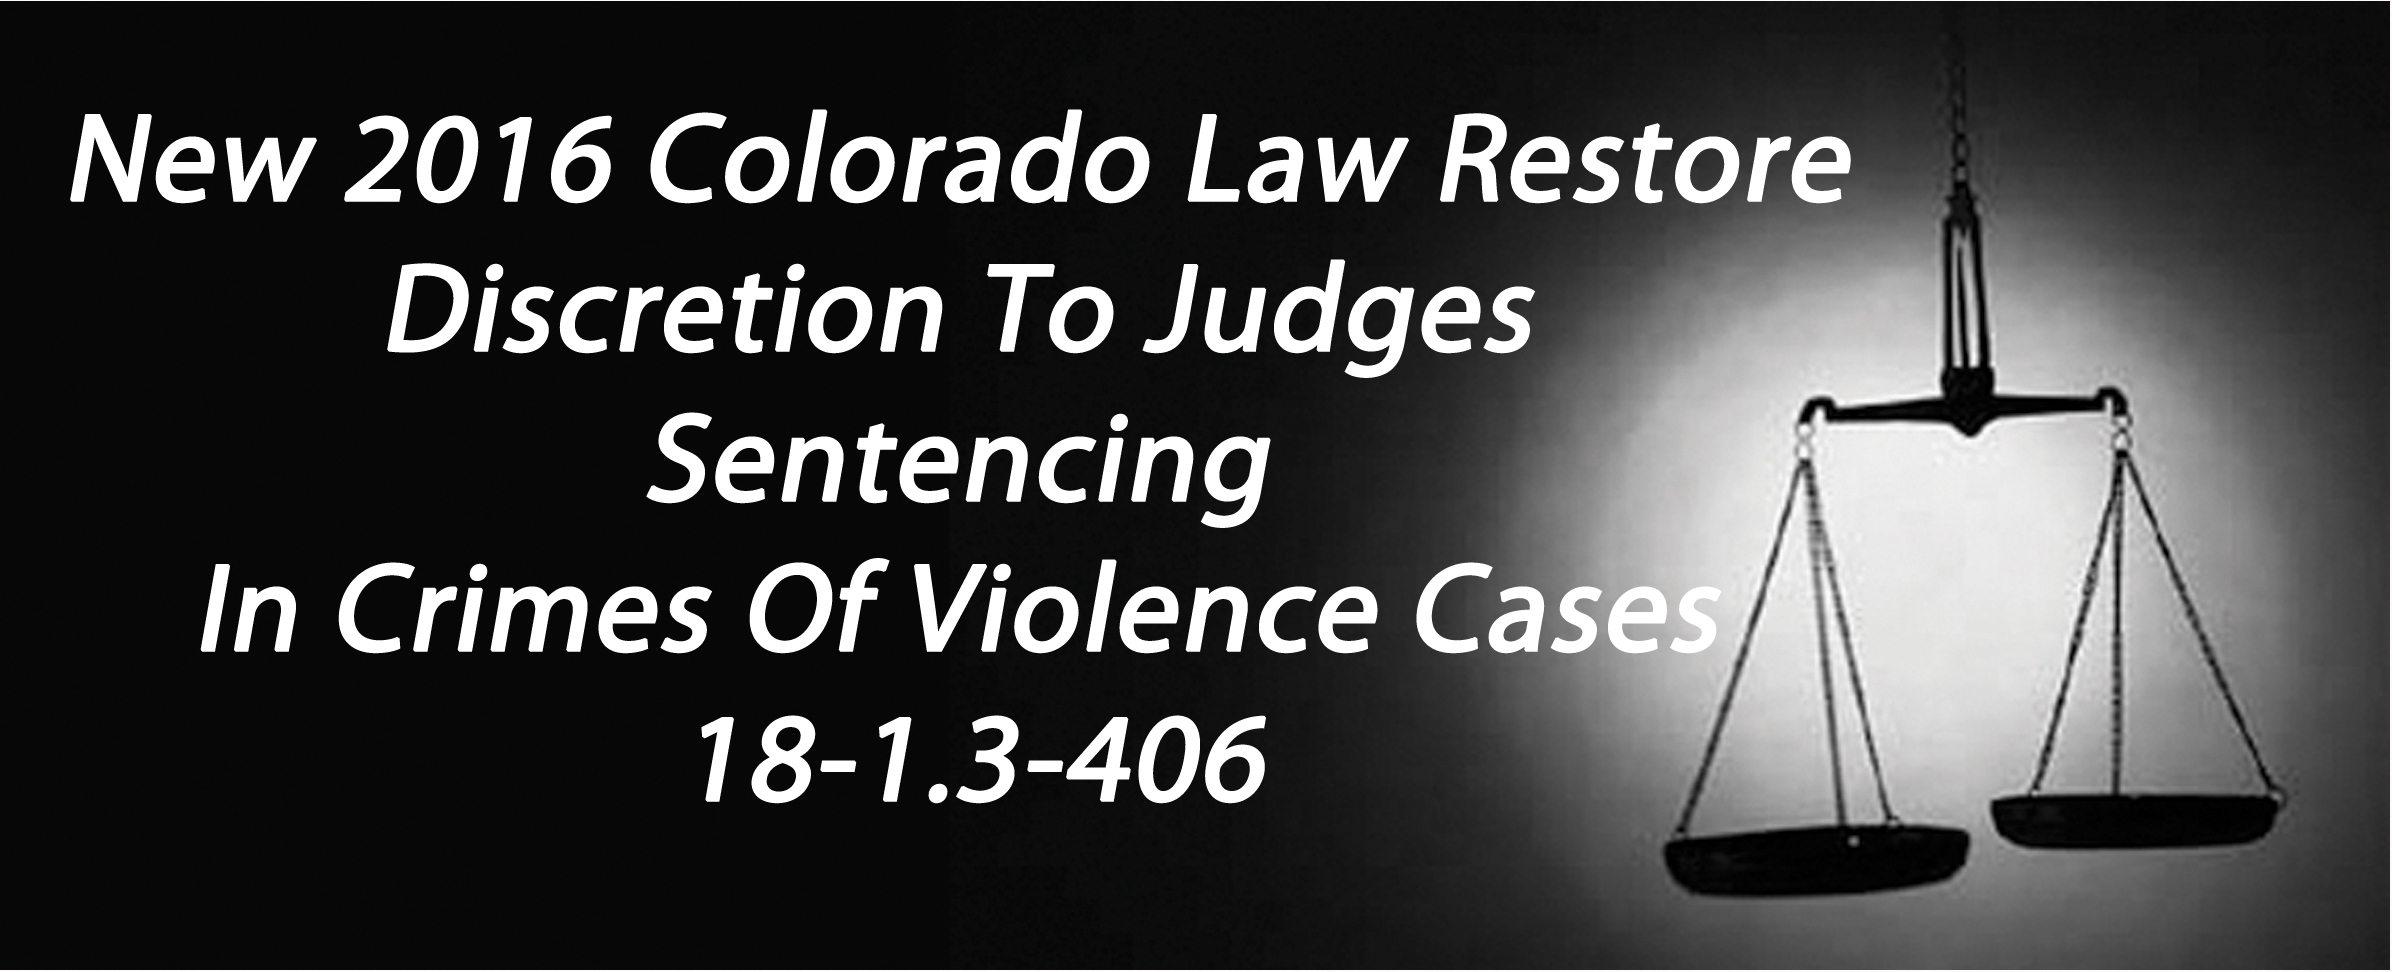 New 2016 Colorado Law Restores Discretion To Judges Sentencing In Crimes Of Violence Cases - 18-1.3-406